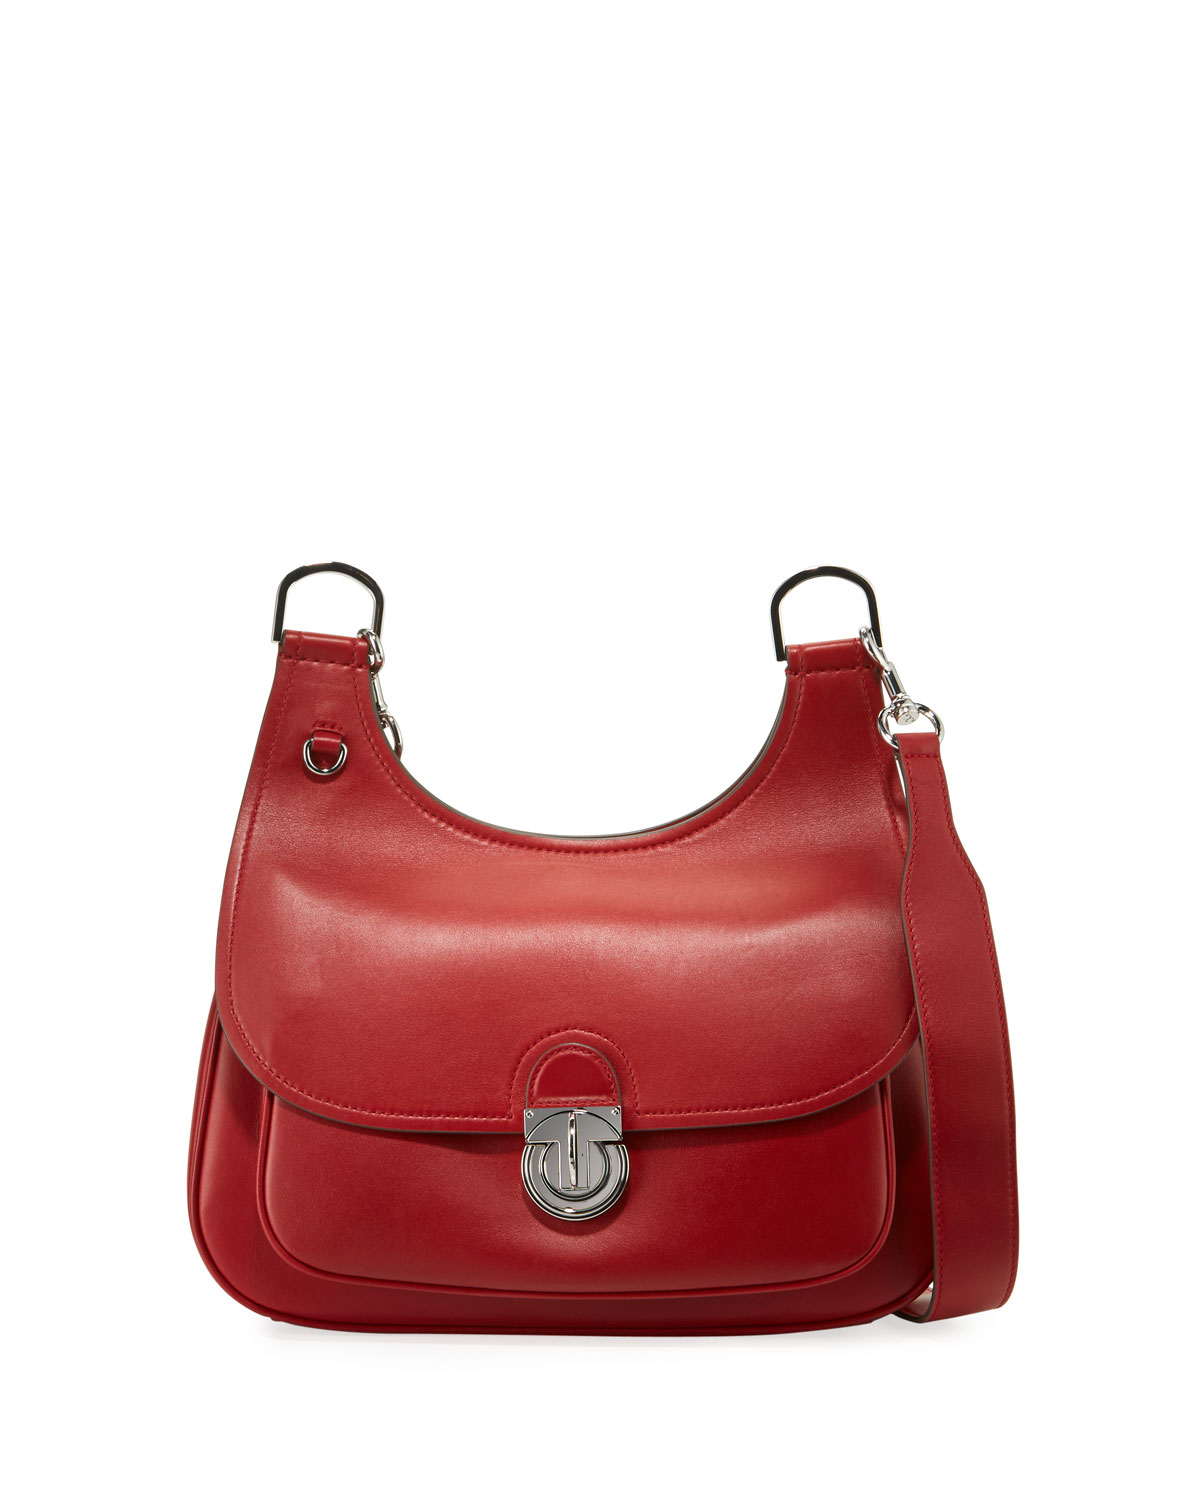 97ac3f81a5551a Tory Burch James Smooth Leather Saddle Shoulder Bag | Neiman Marcus